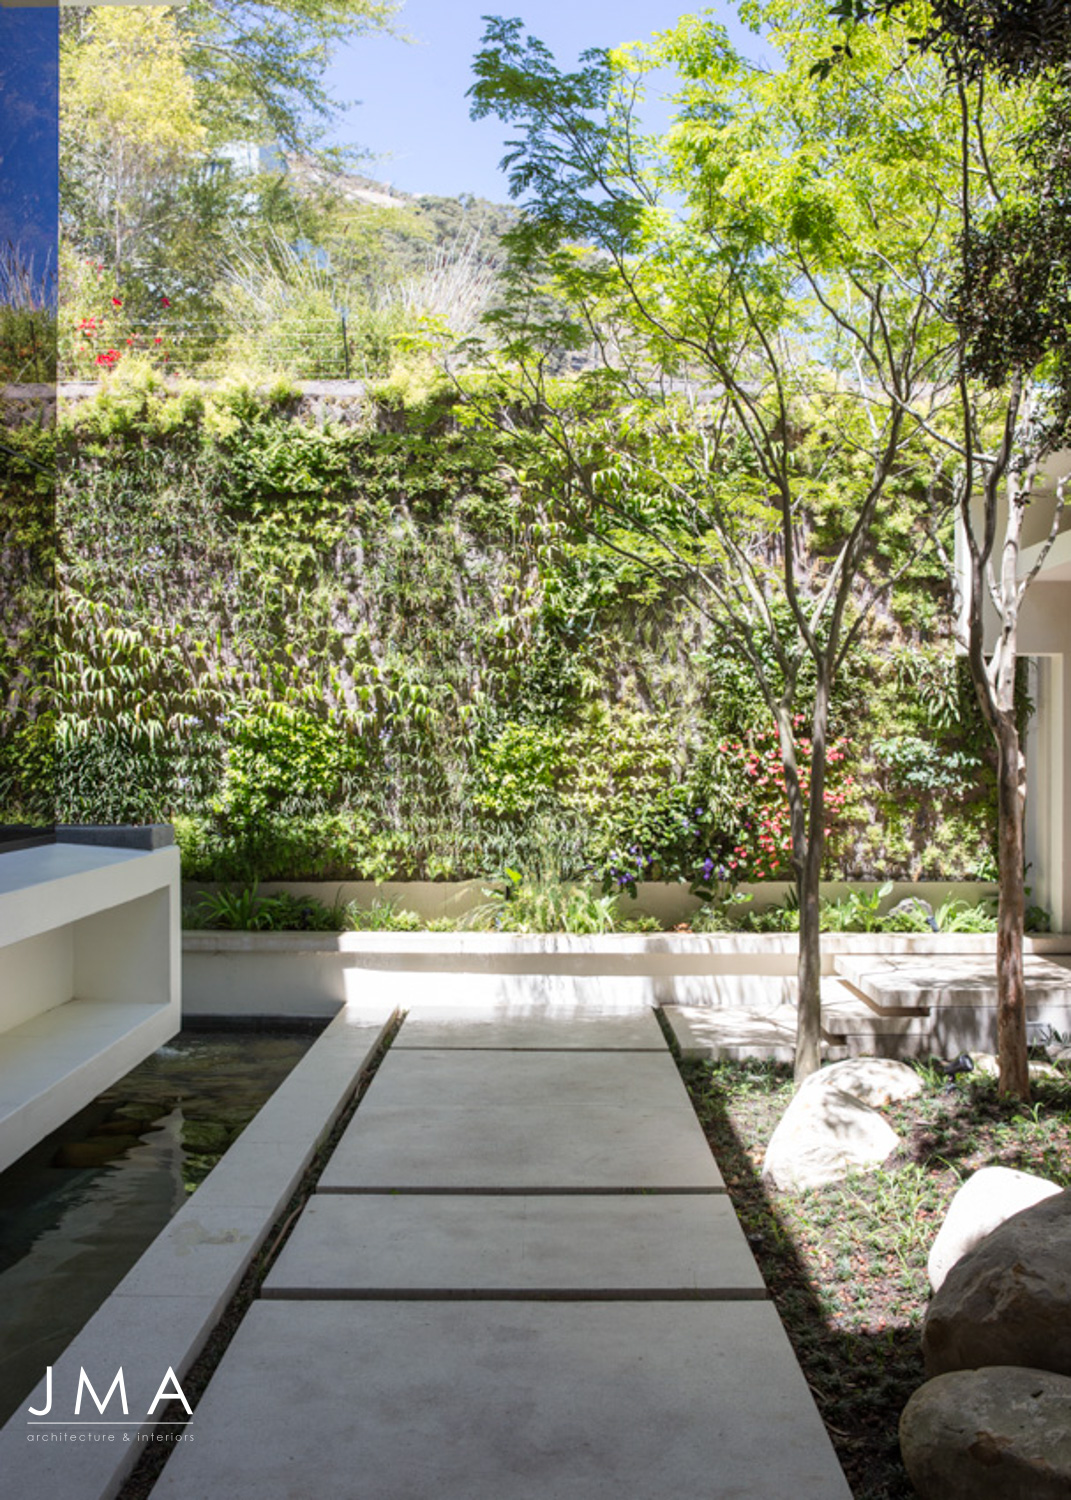 Avenue Fresnaye Villa Entrance Courtyard architecture & landscaping 2 - Interior Architectural design by Jenny Mills Architects